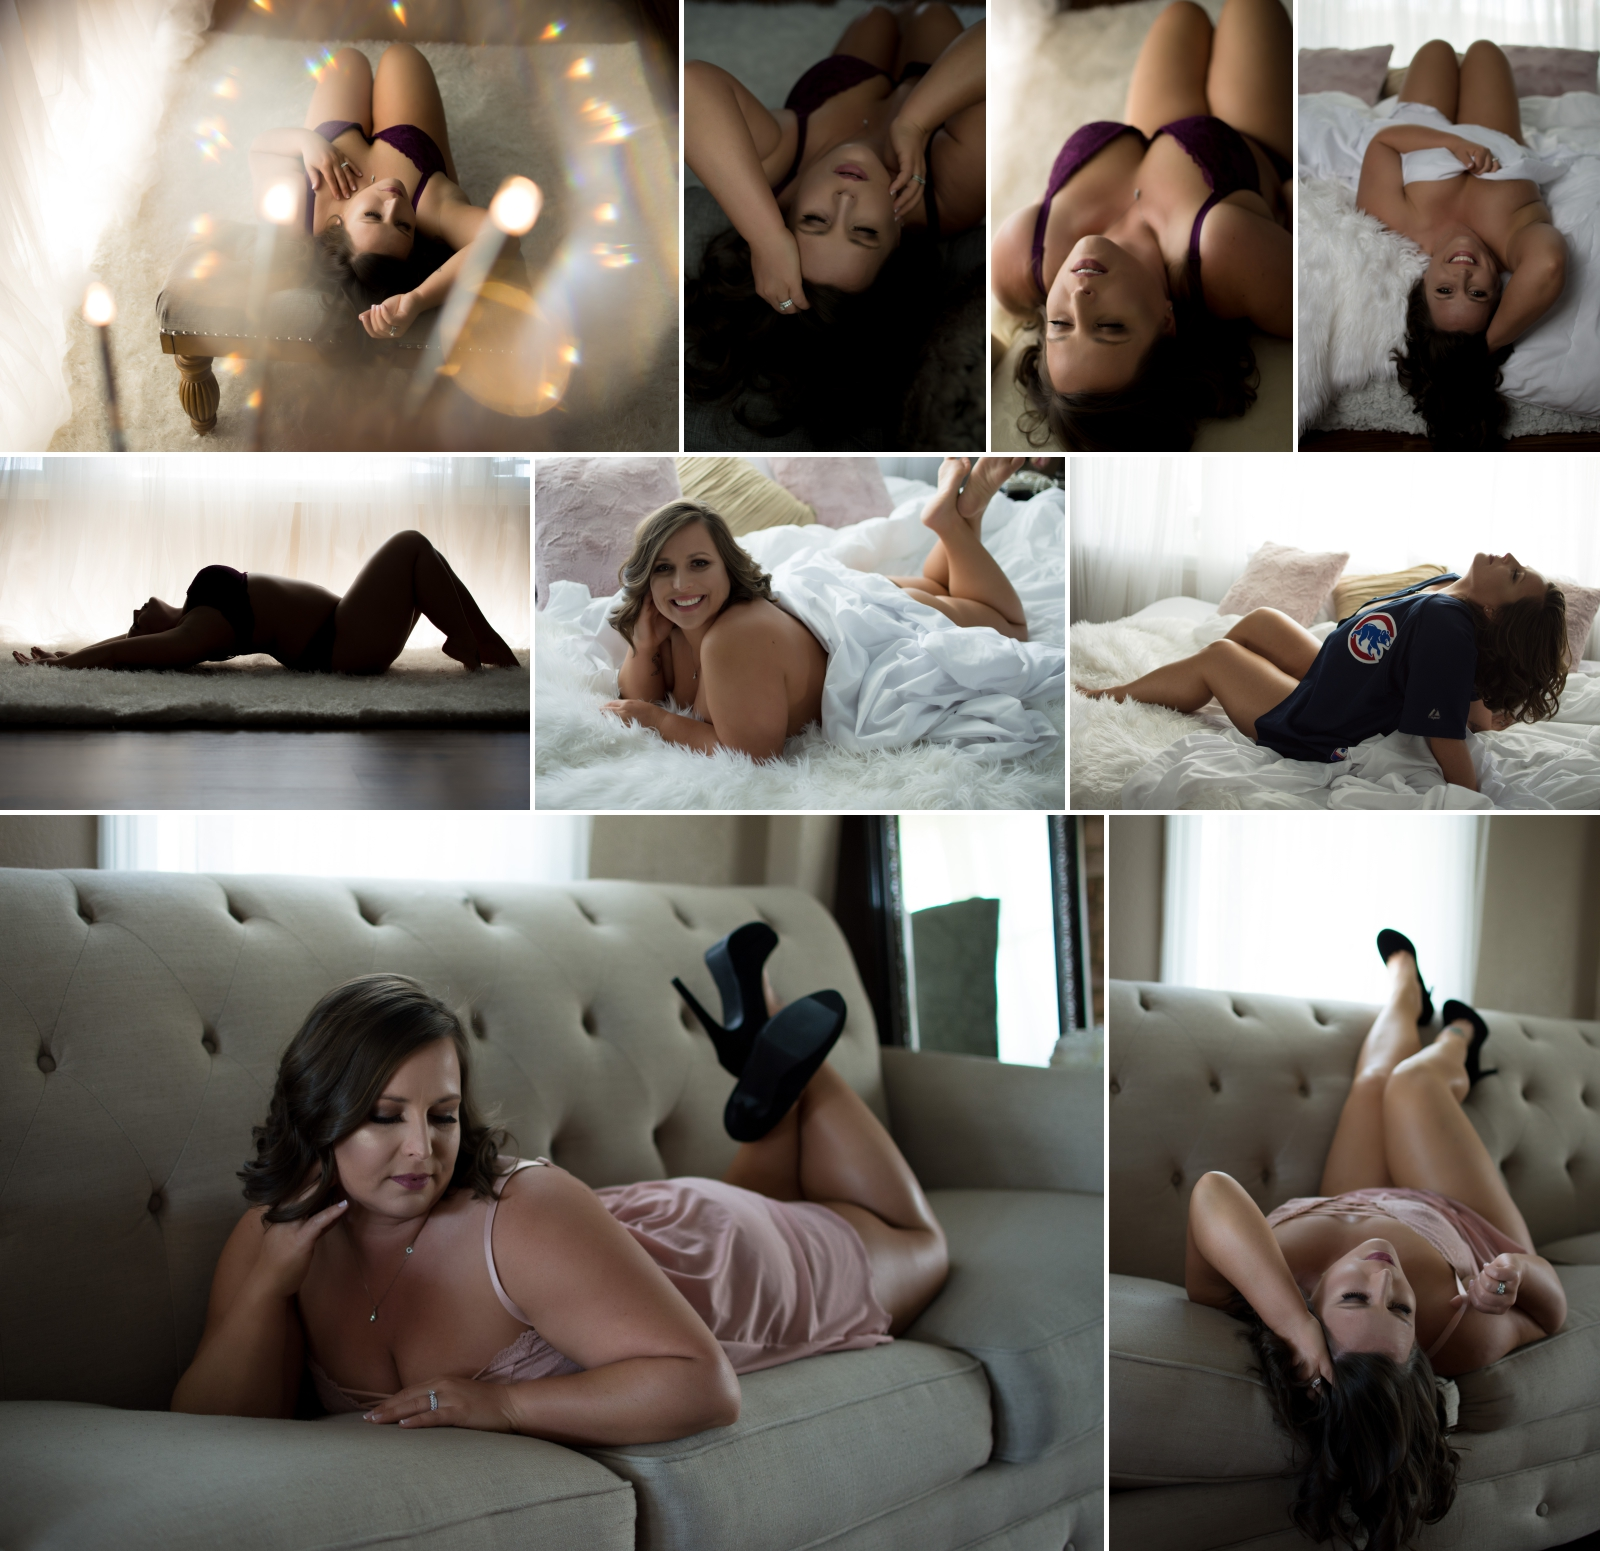 Photos from Heather's boudoir session